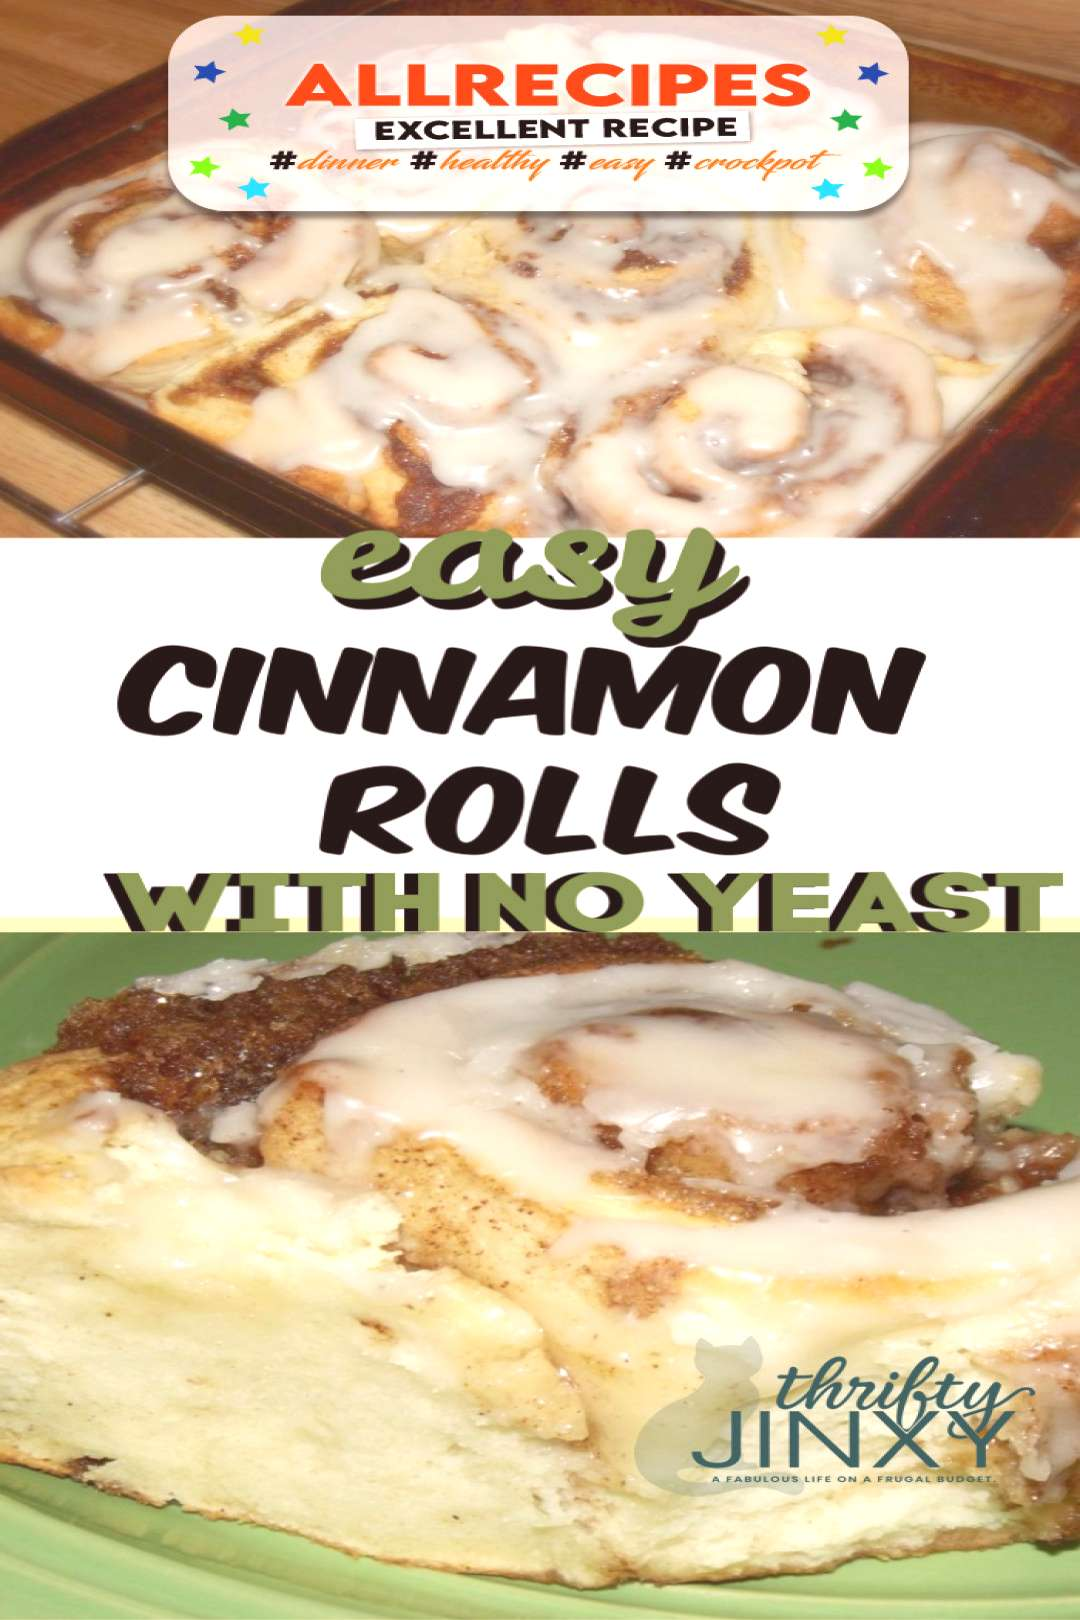 Quick and Easy No Yeast Cinnamon Rolls - - There's no need to wait for the dough to rise with this